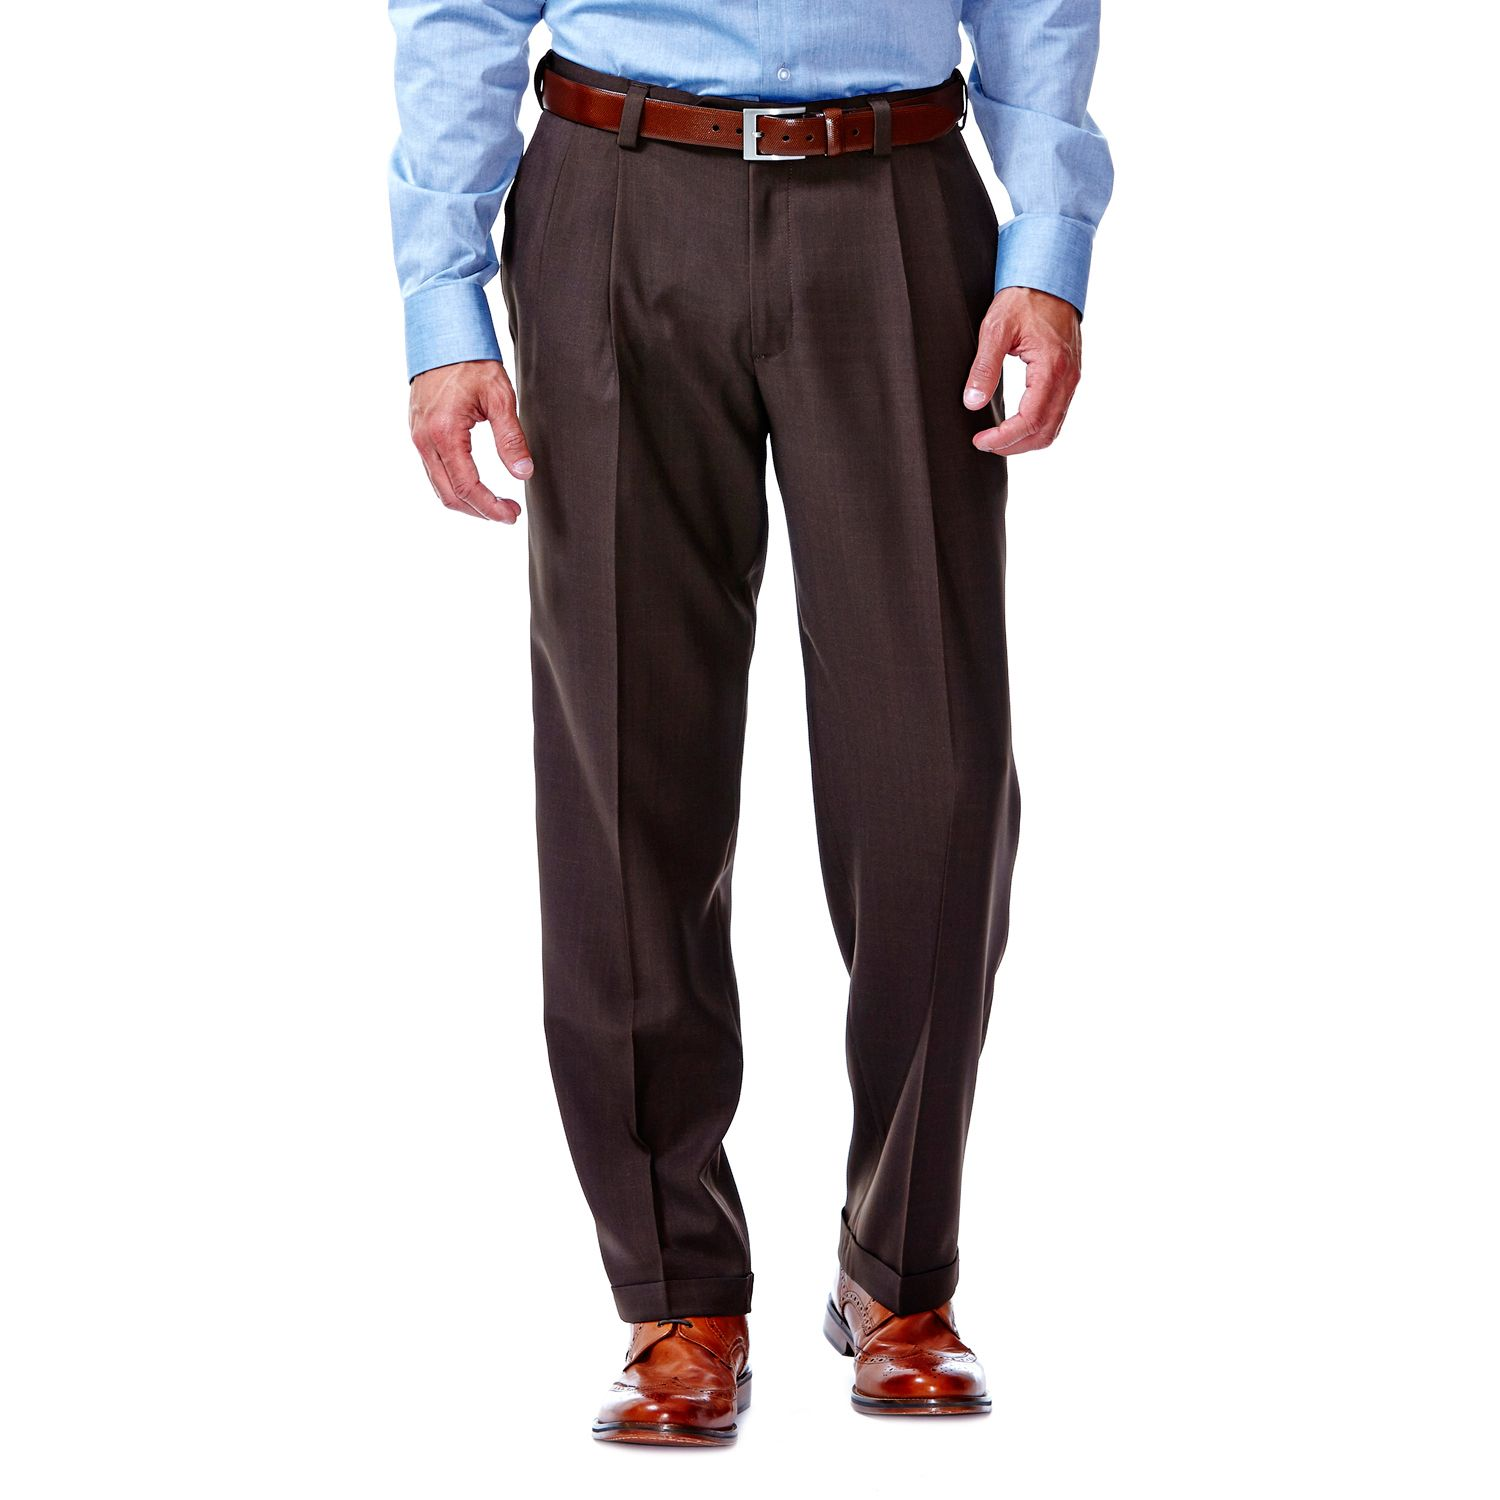 Pleated Mens Dress Pants whZLmvyi